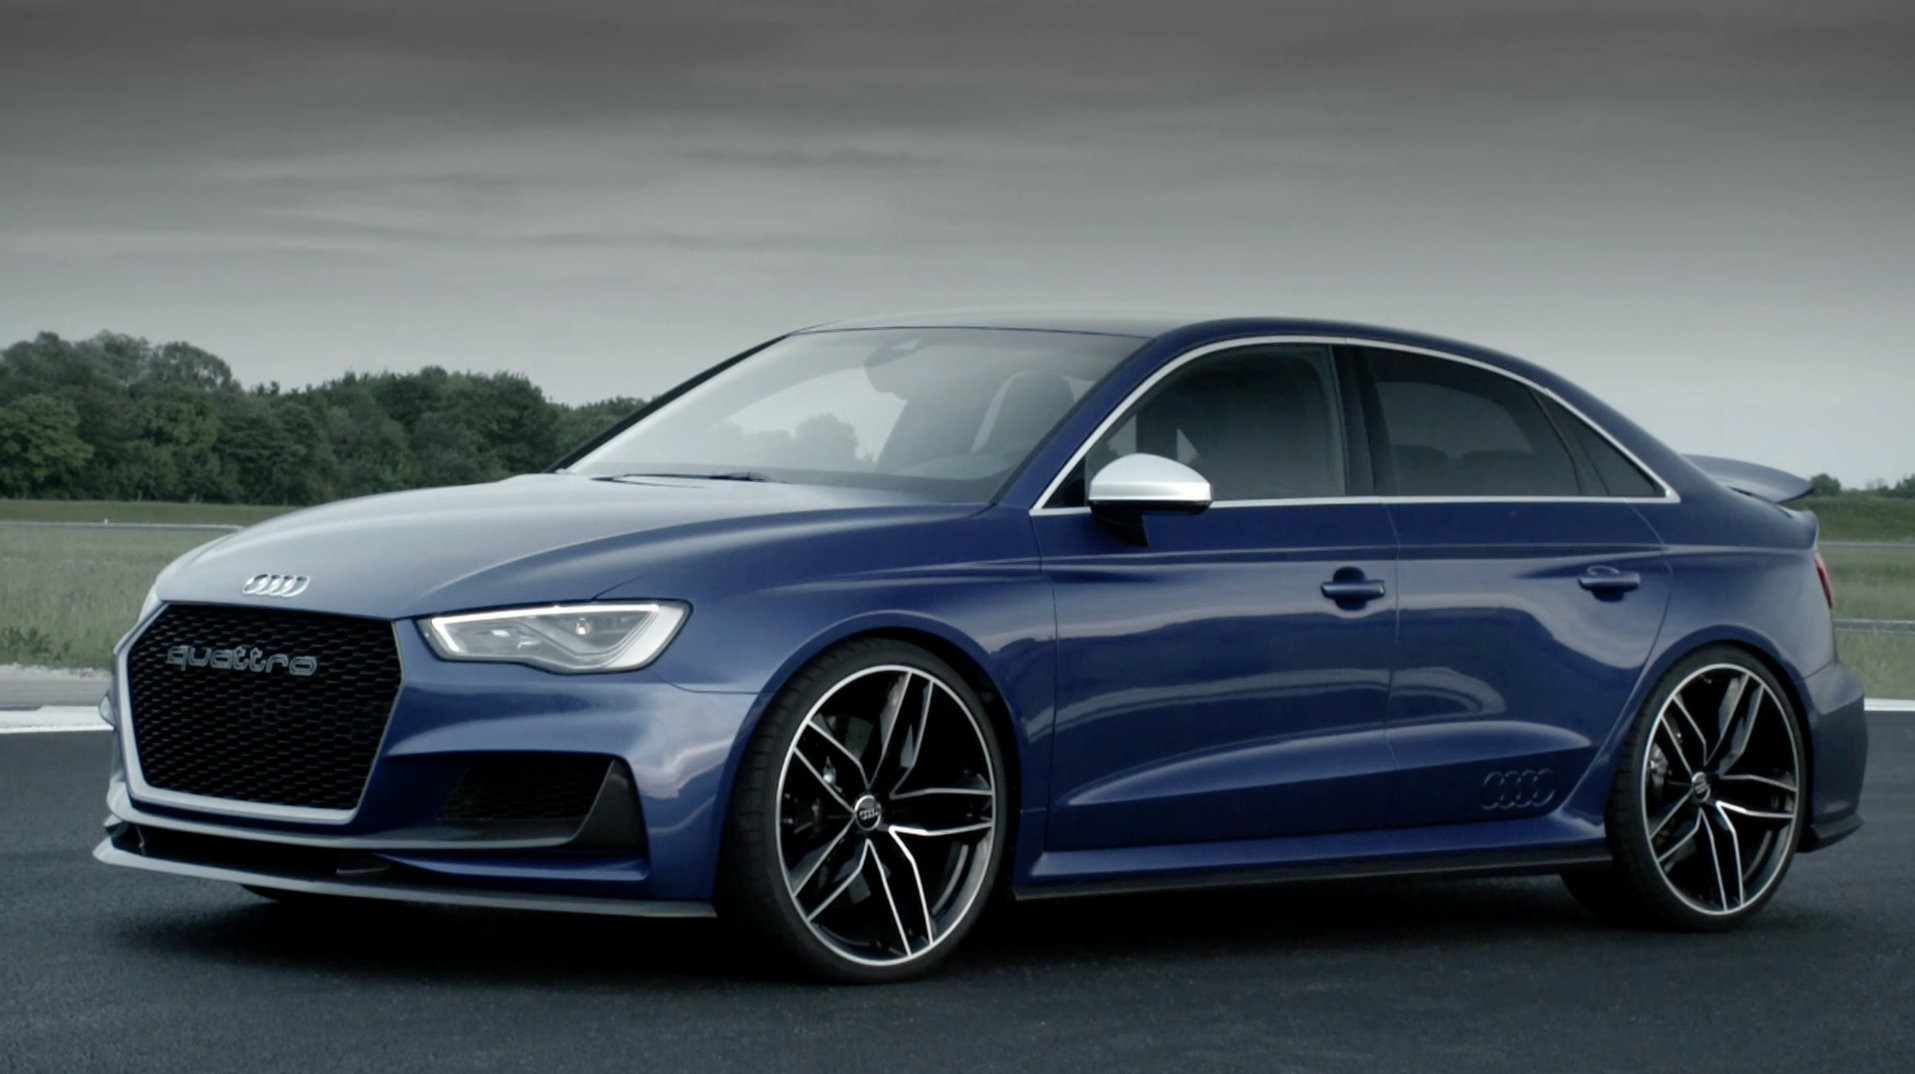 The Audi A3 clubsport quattro concept